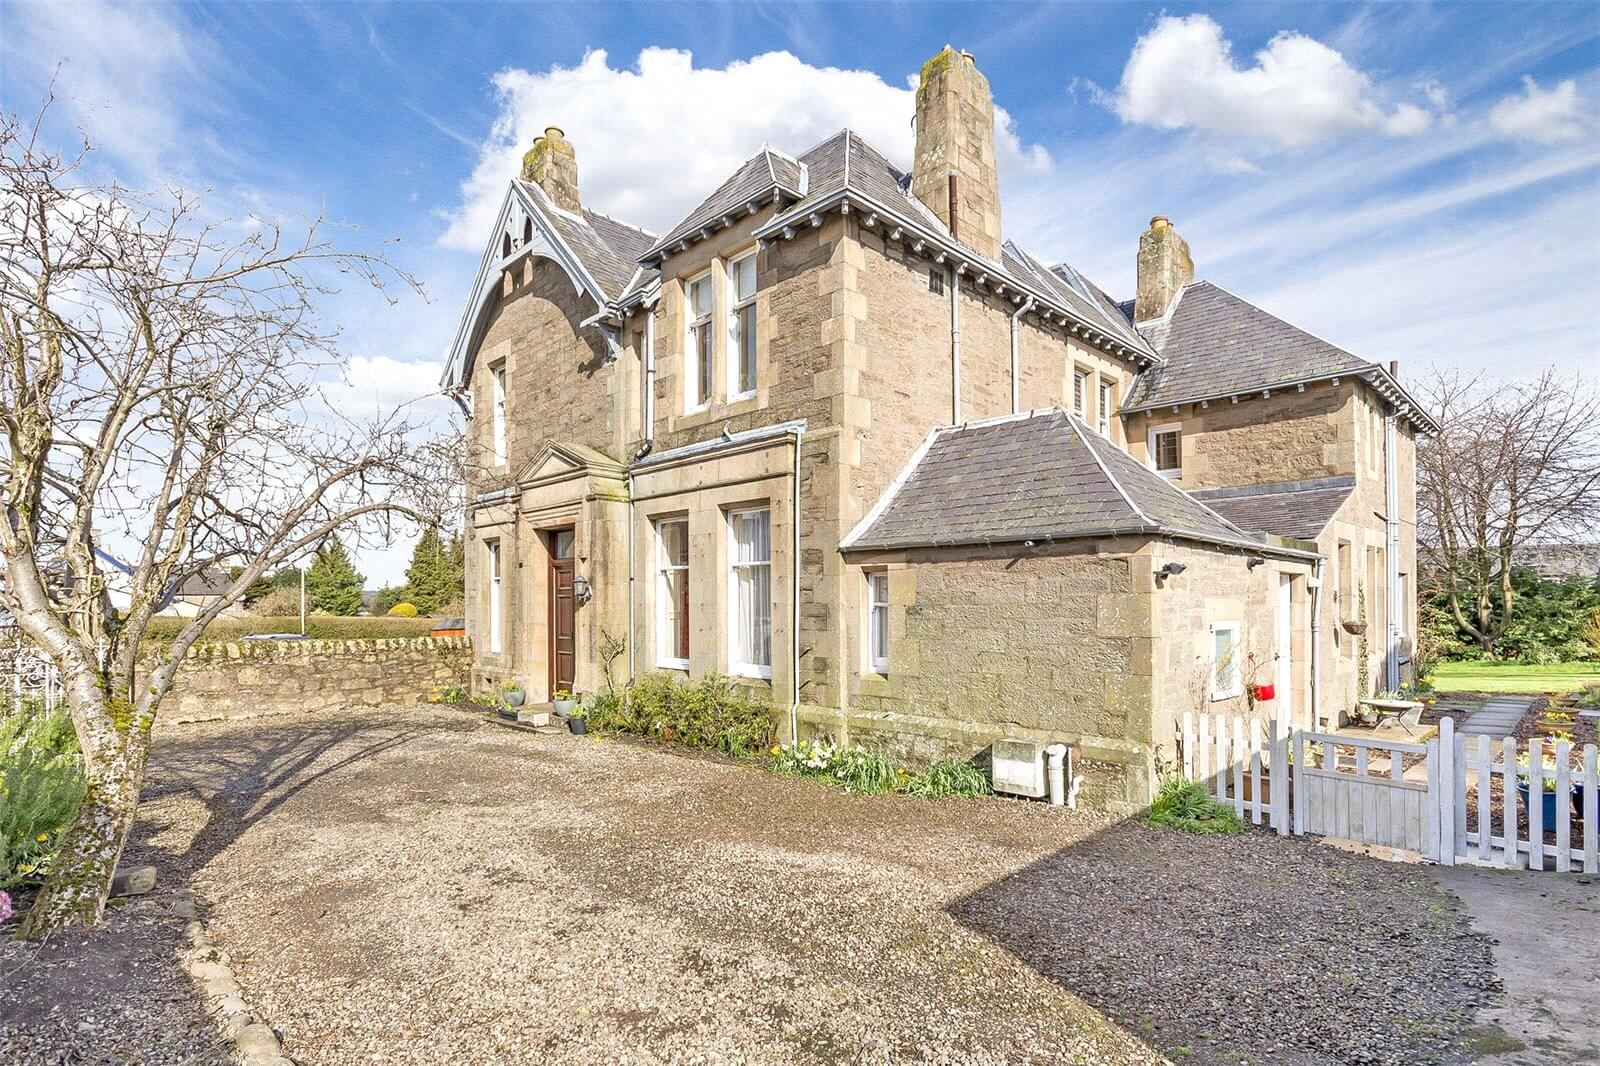 Transformation: Former bank converted into beautiful family home